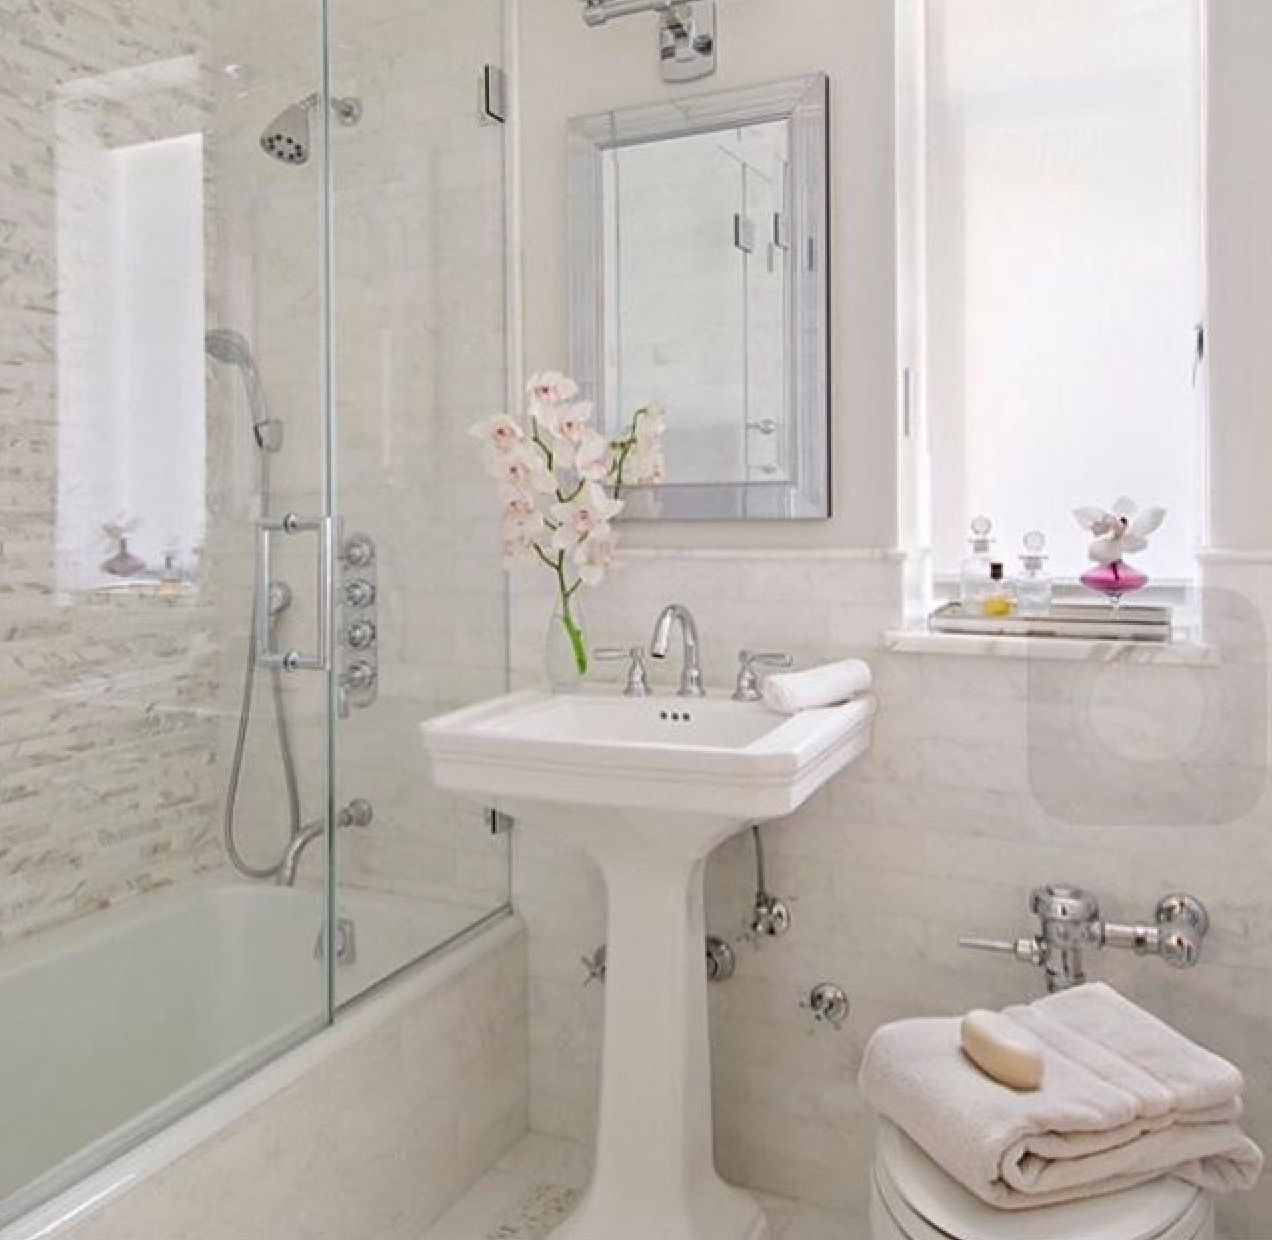 Pin by Lauren Ikin on Attic | Pinterest | Small bathroom, Bathroom ...